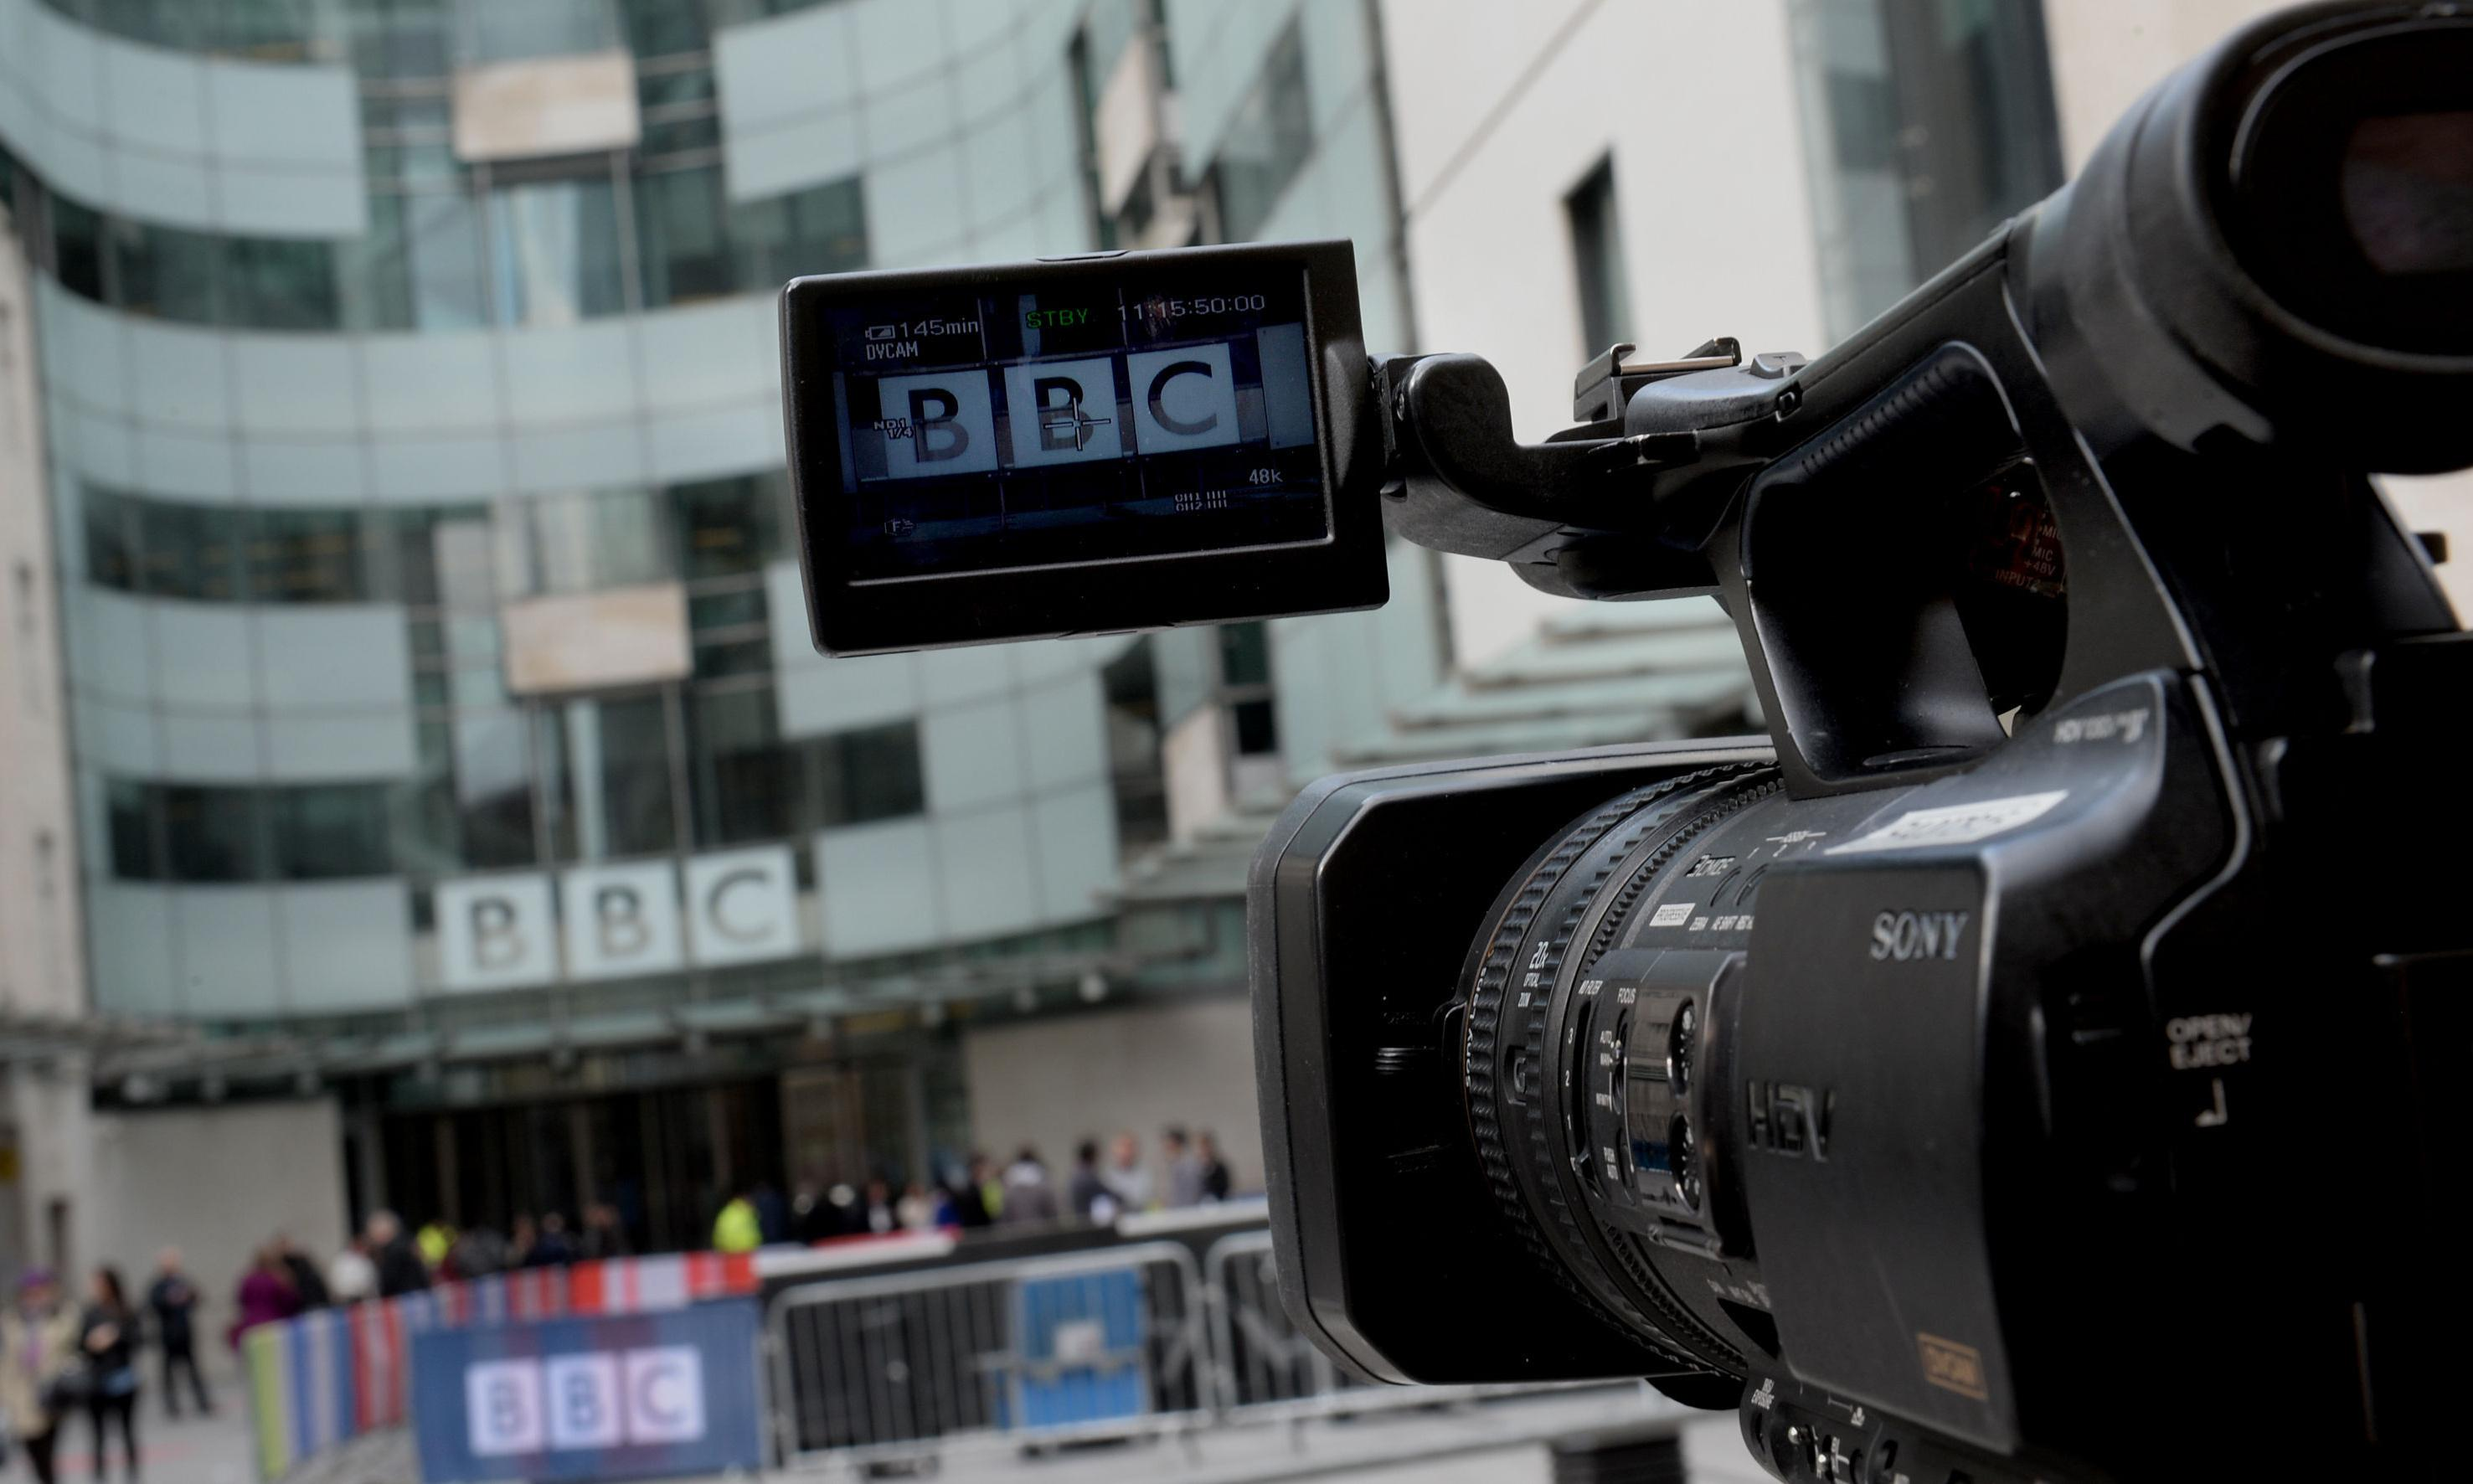 BBC to axe Watchdog programme after 40 years